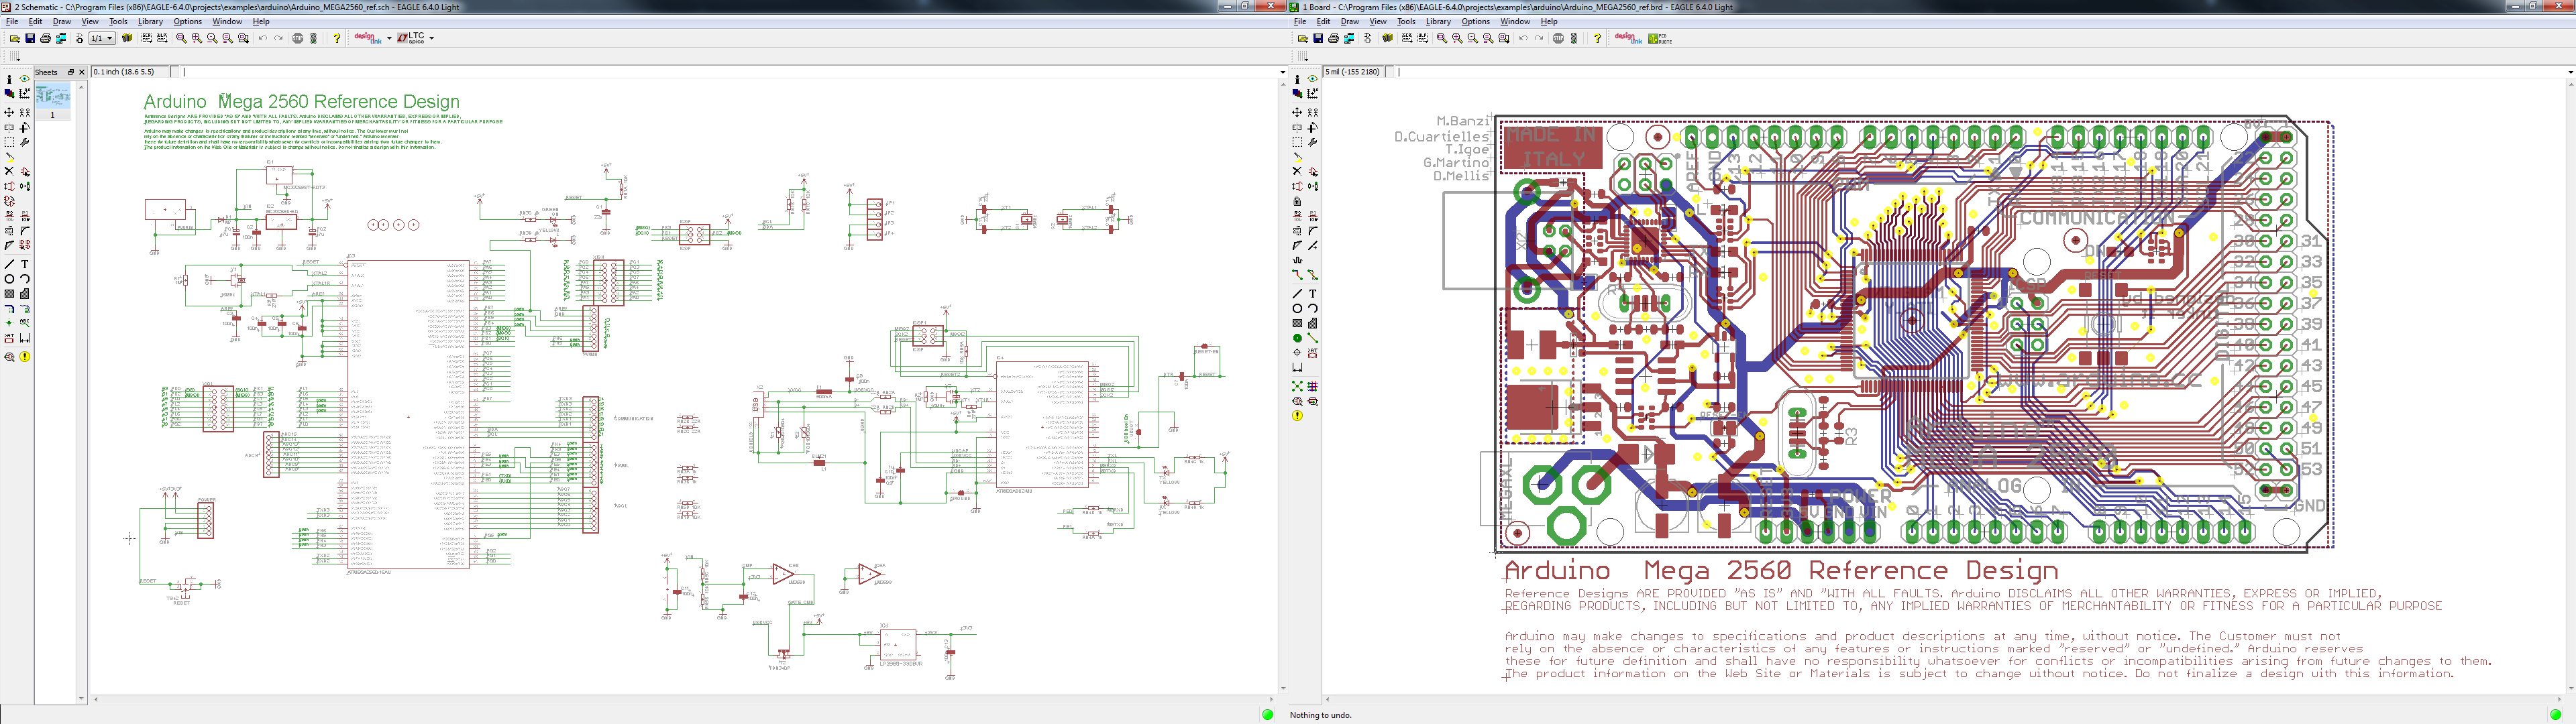 How To Install And Setup Eagle Circuit Board Project Schematic View Both Open